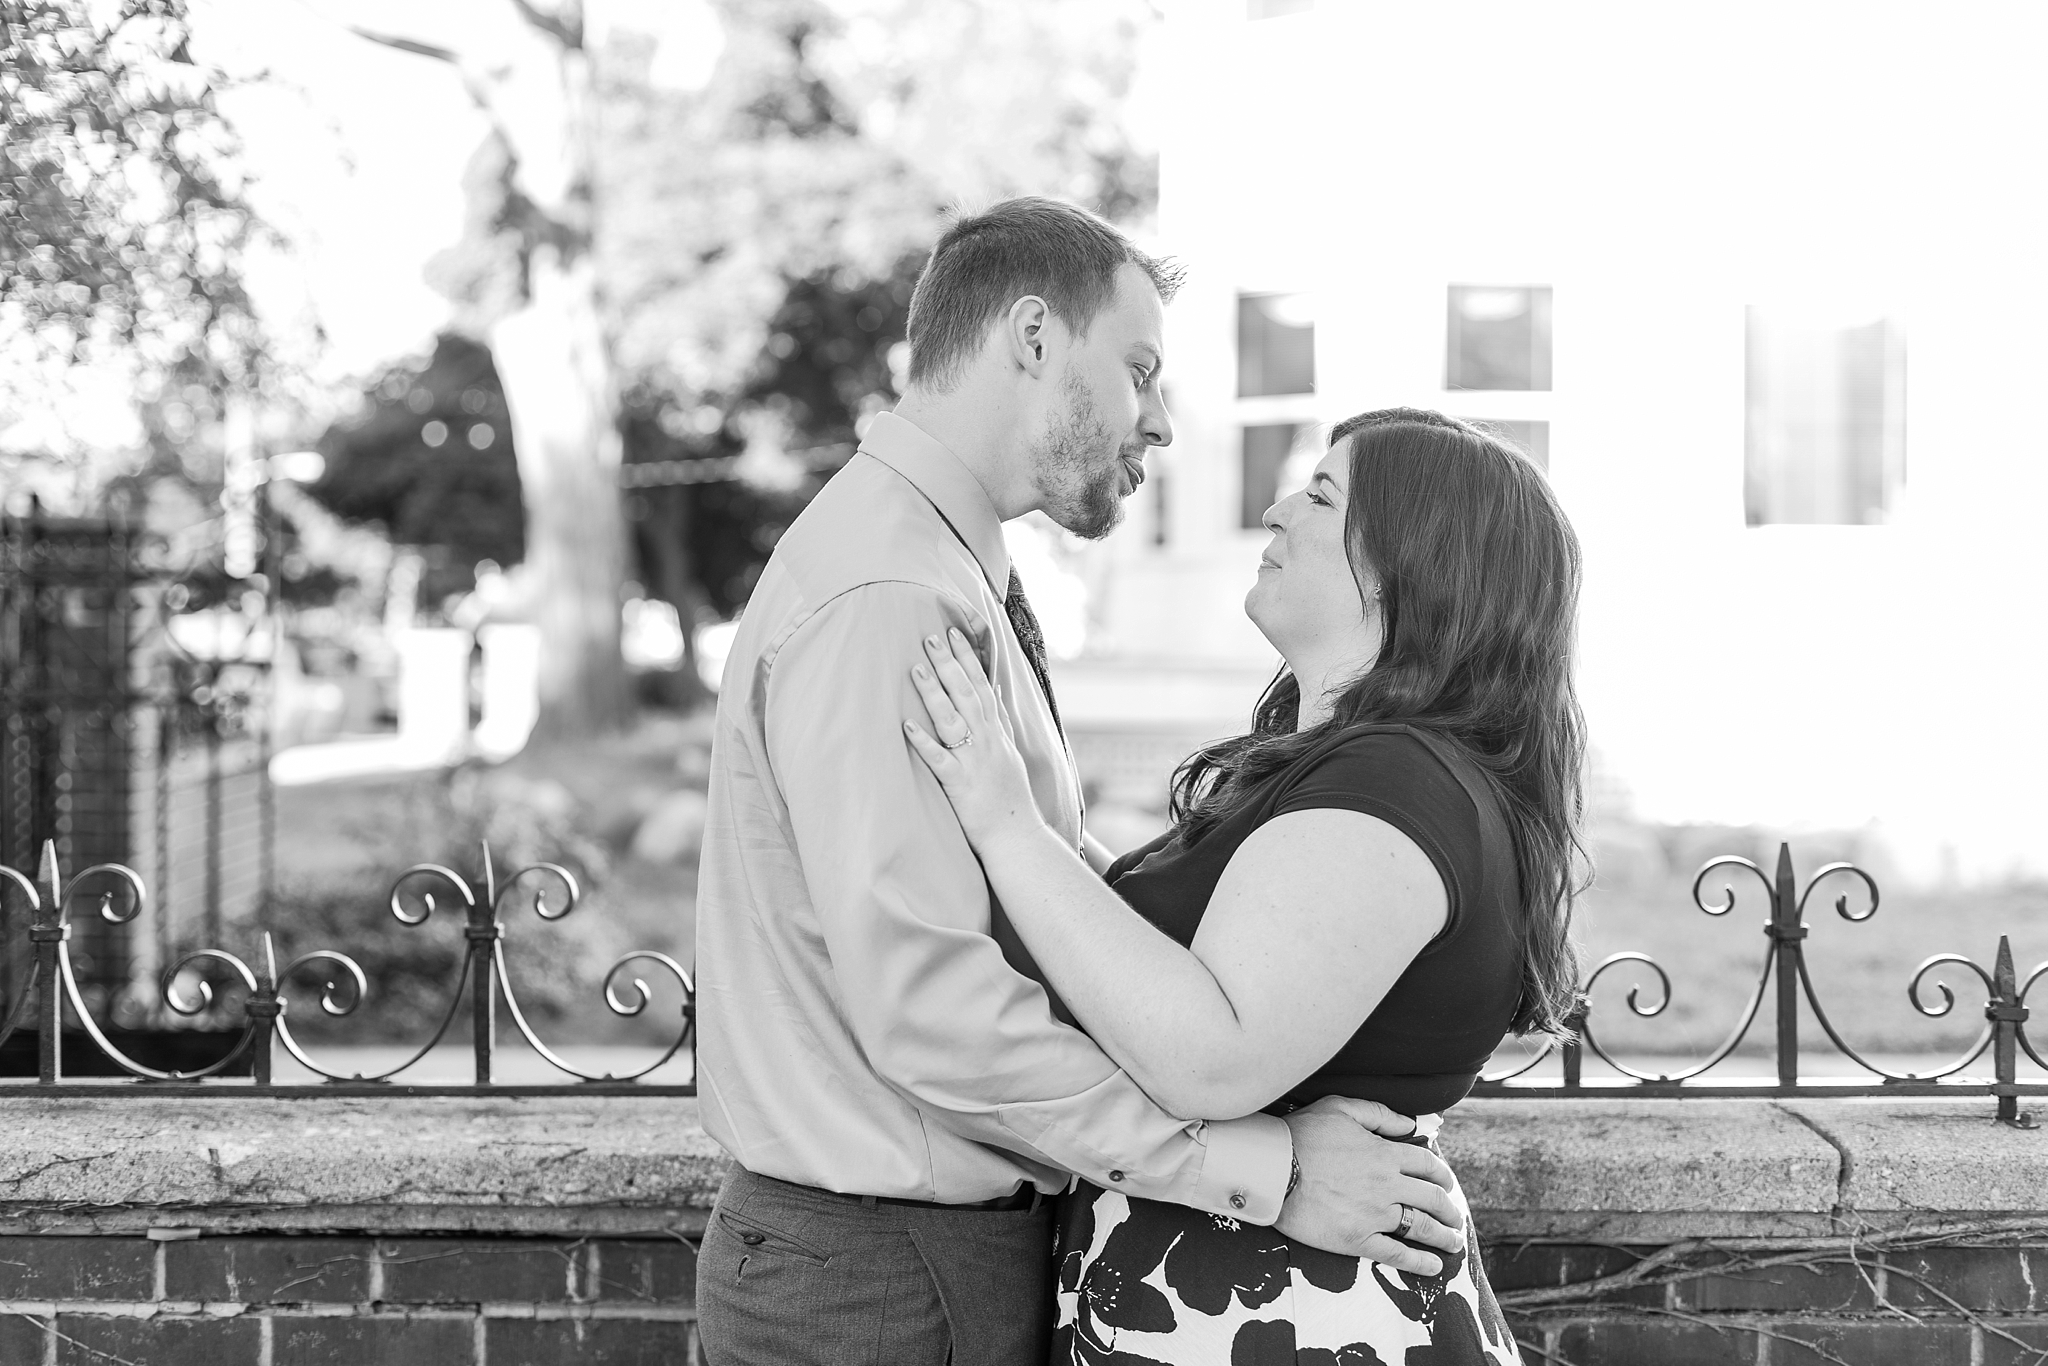 fun-fall-engagement-photos-in-downtown-plymouth-michigan-by-courtney-carolyn-photography_0004.jpg